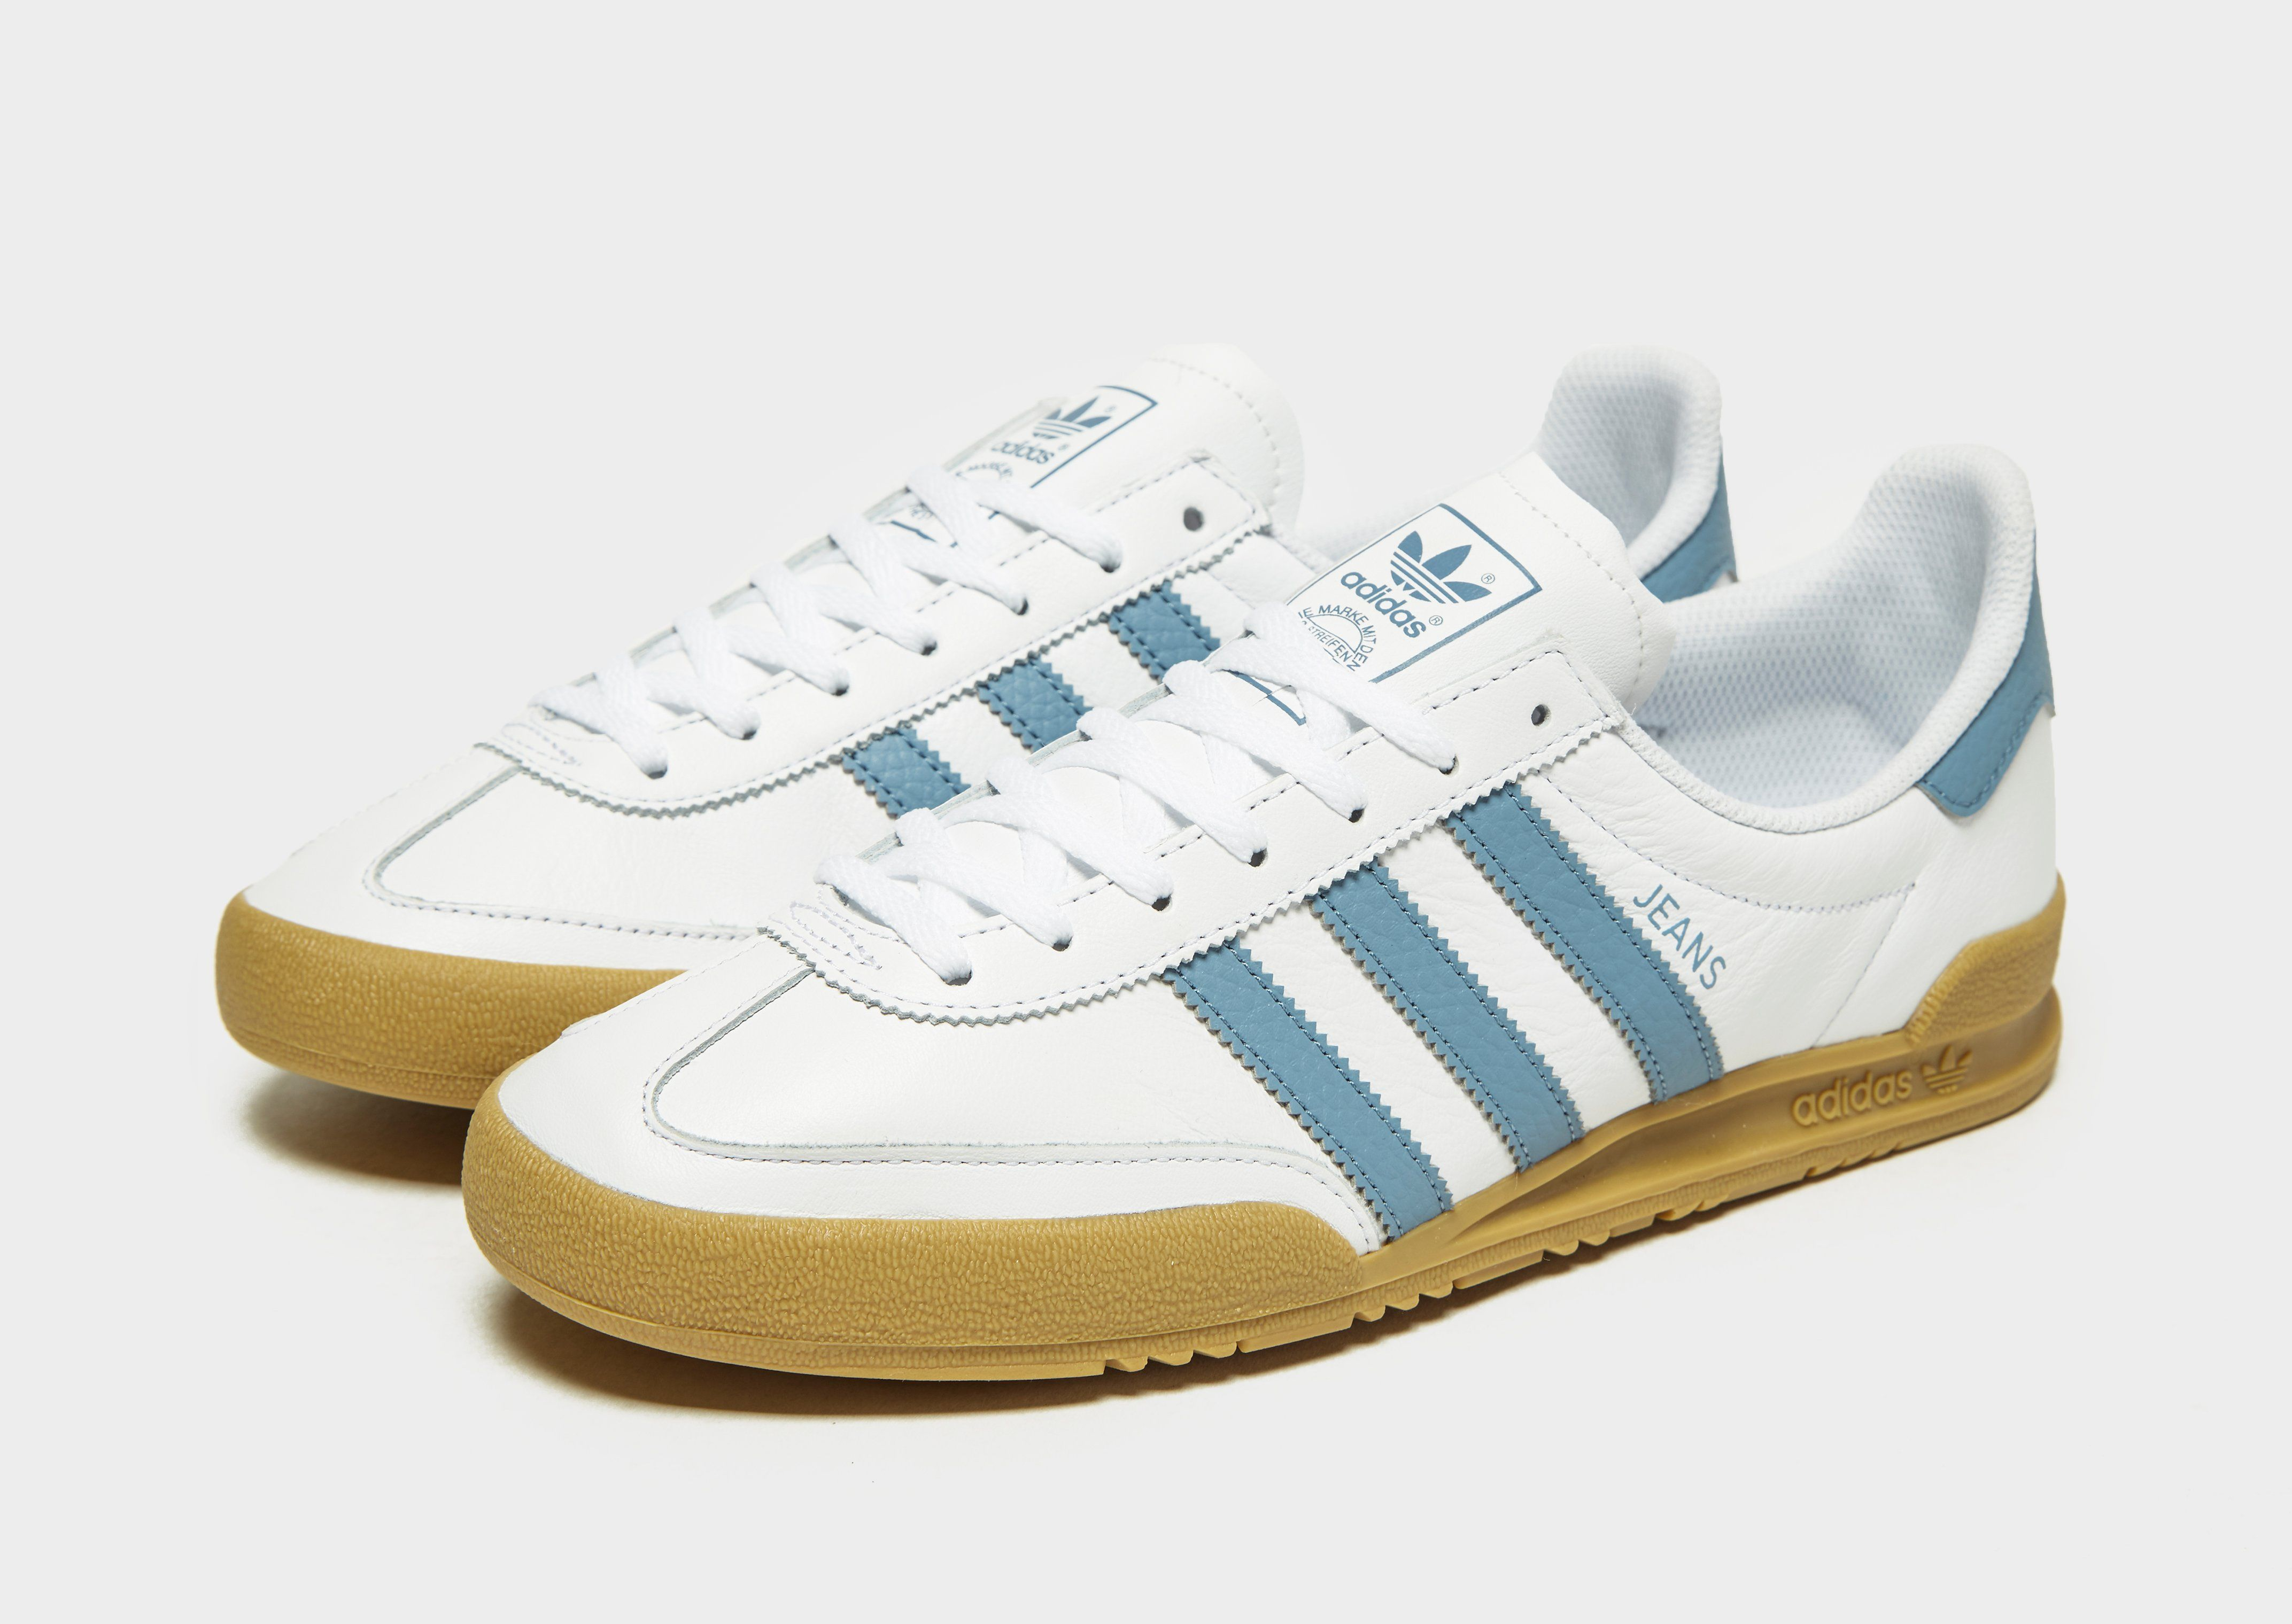 adidas Originals Jeans Leather Herren